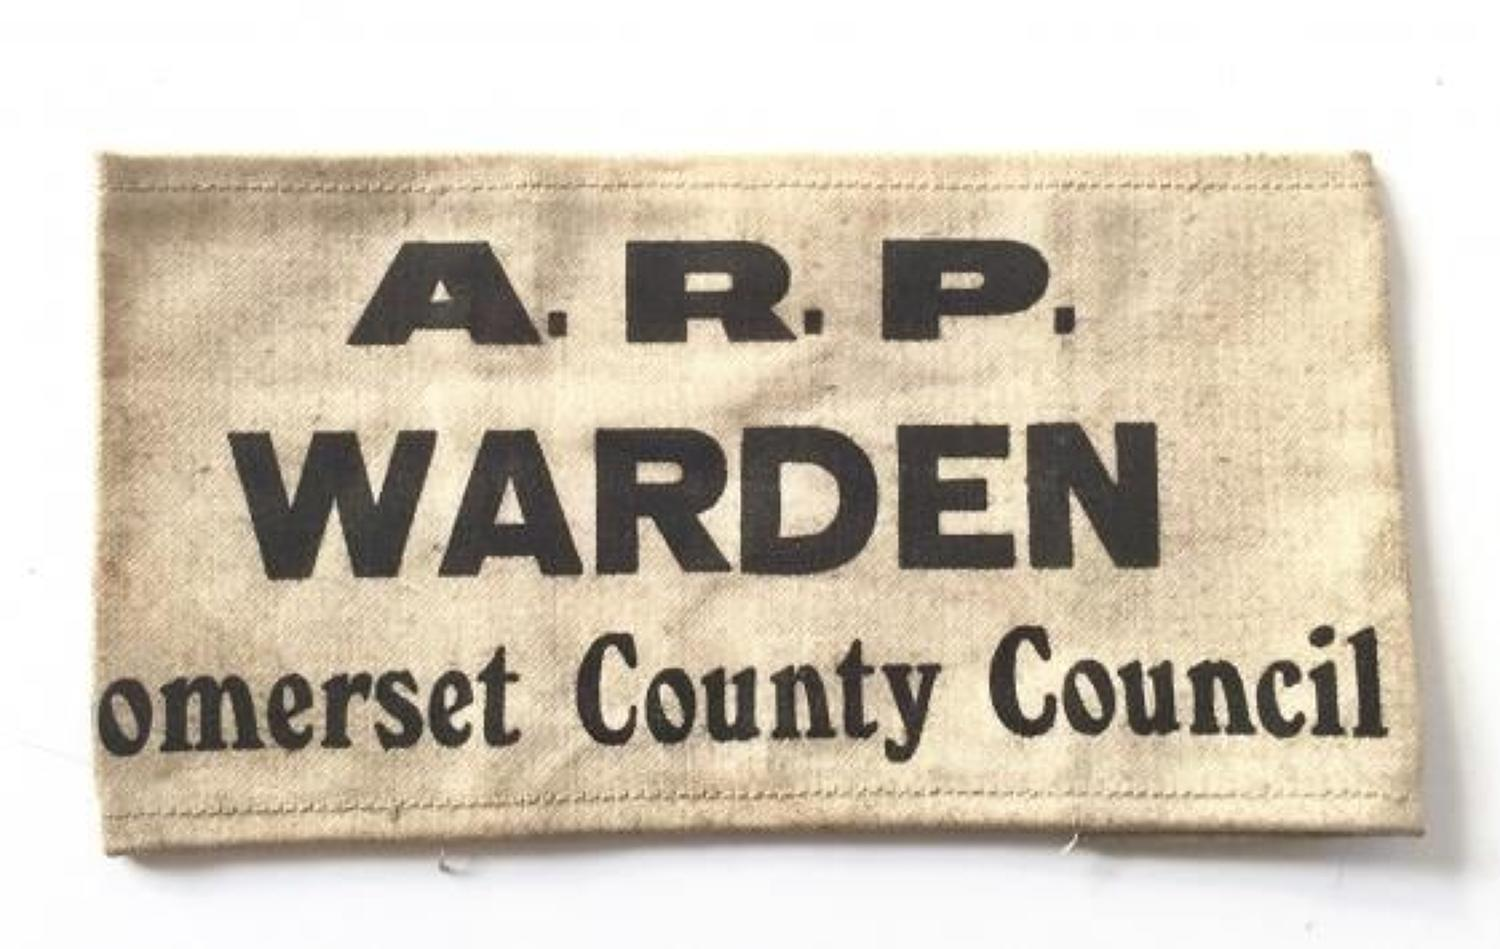 WW2 Home Front Somerset County Council ARP Warden Armband.